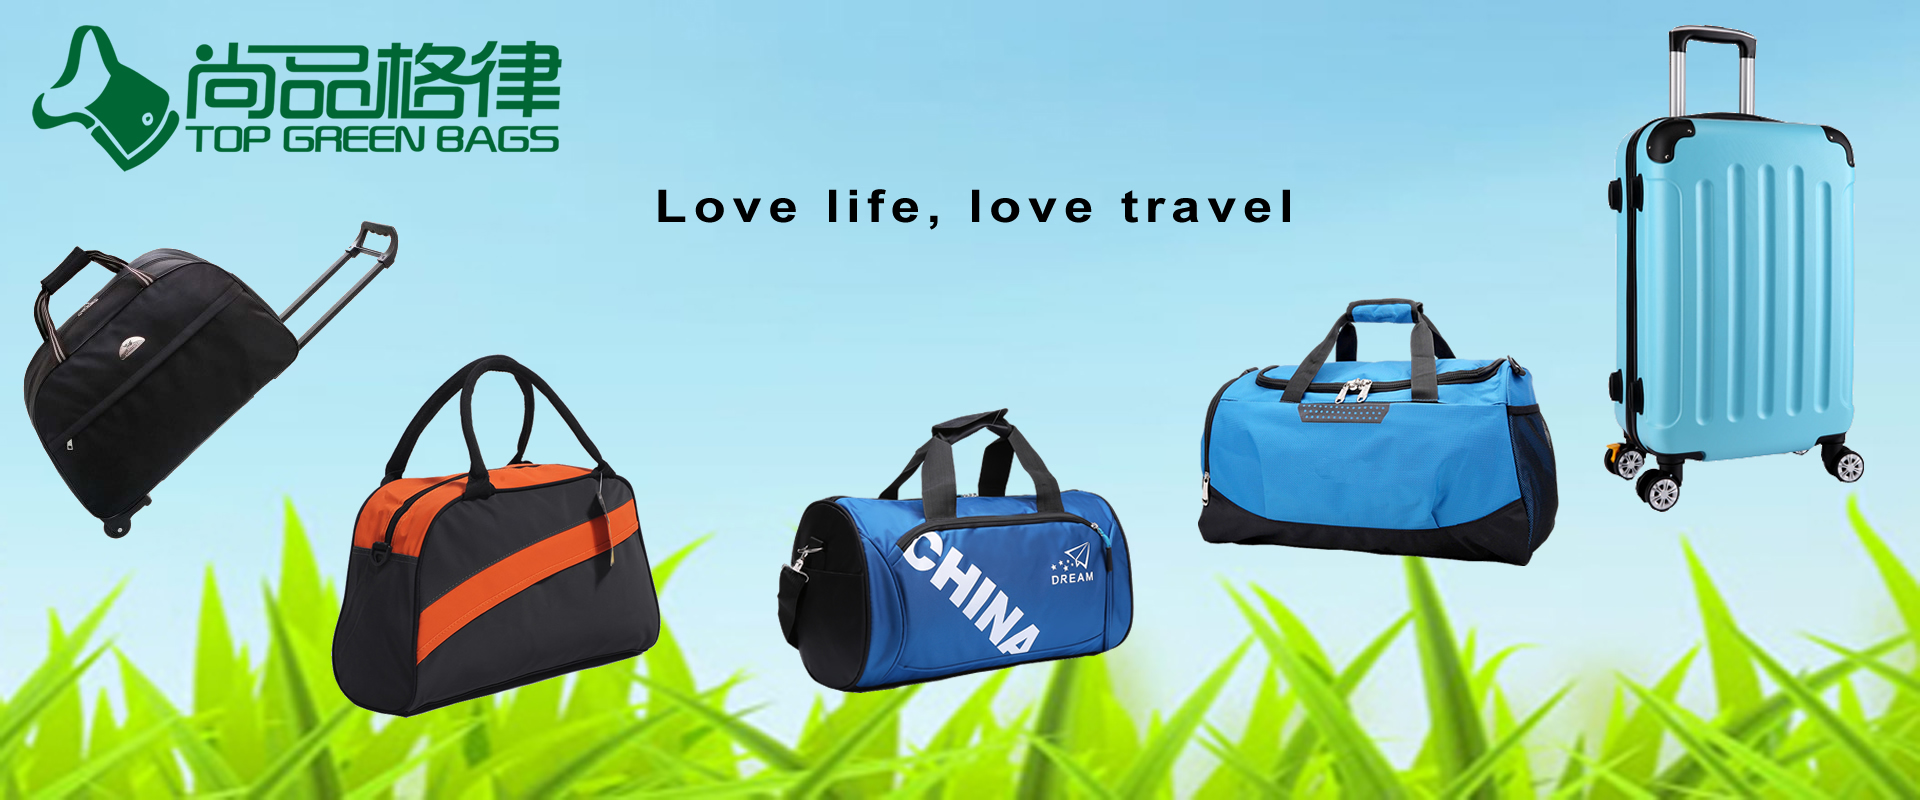 travel bag & suitcases